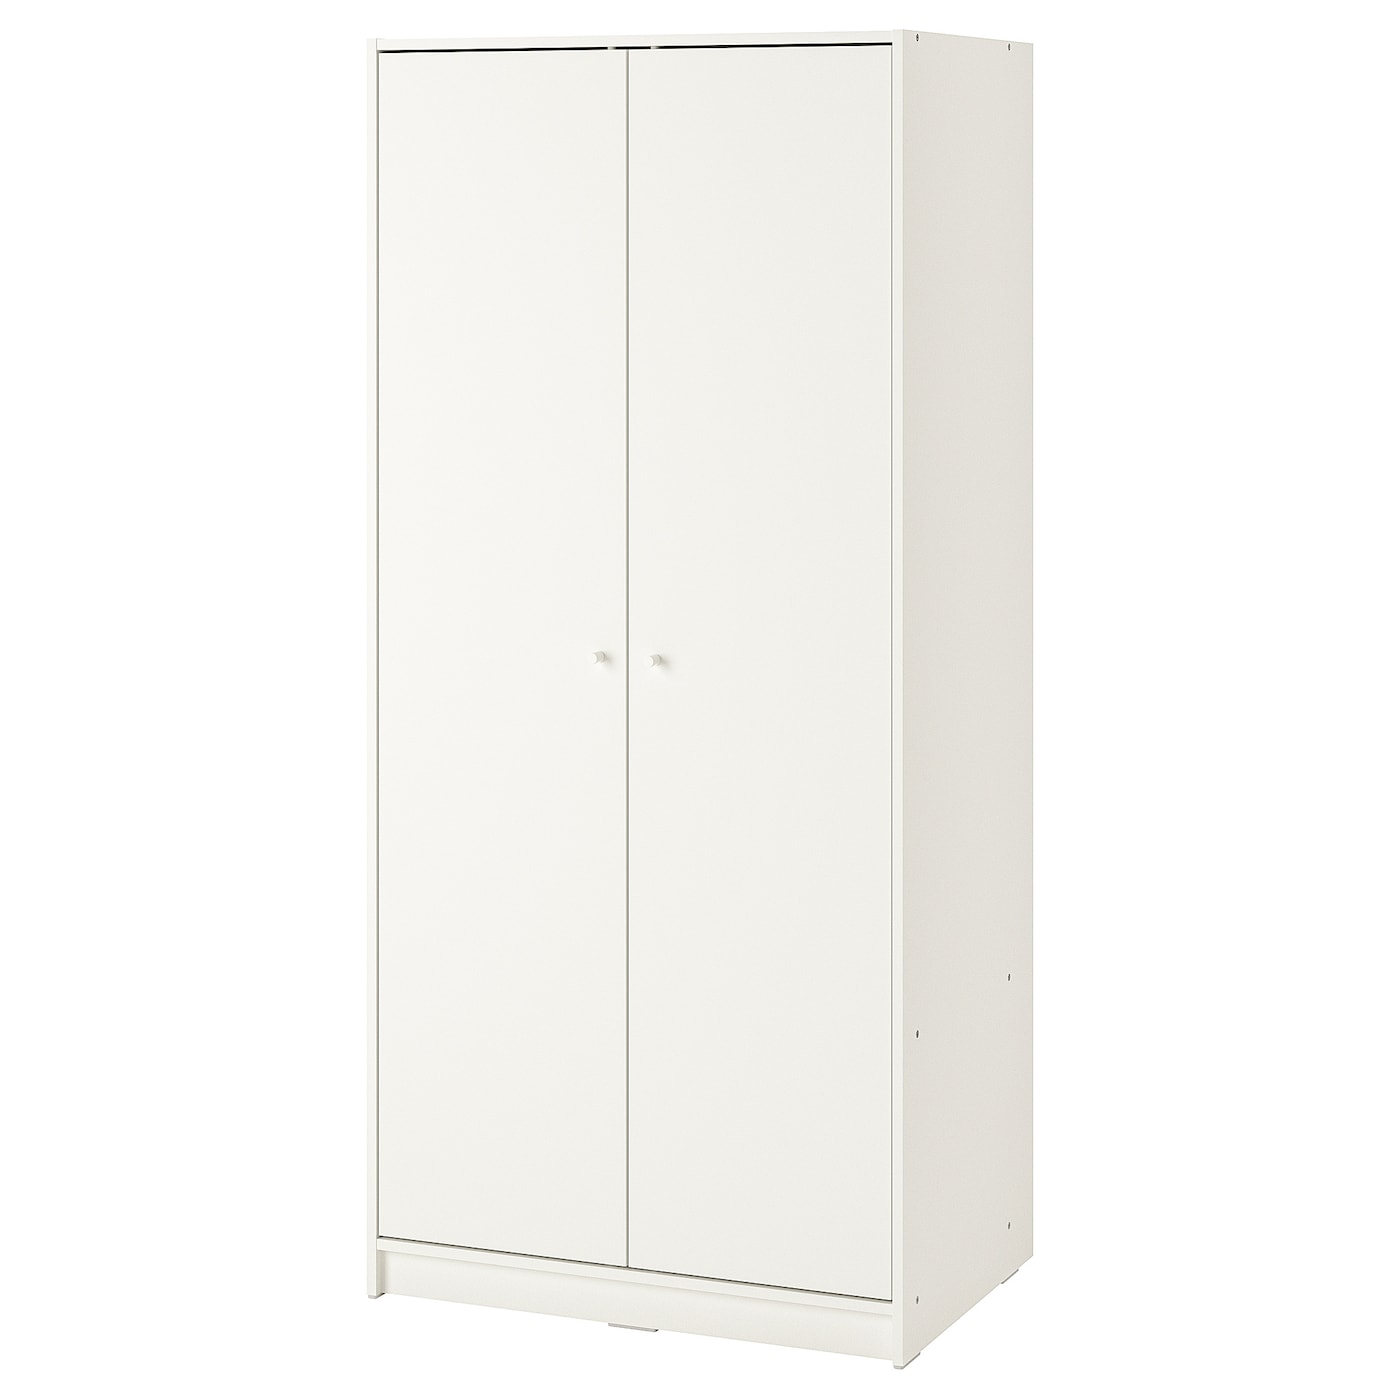 Armadio Ikea Due Ante.Kleppstad Guardaroba Con 2 Ante Bianco Ikea It